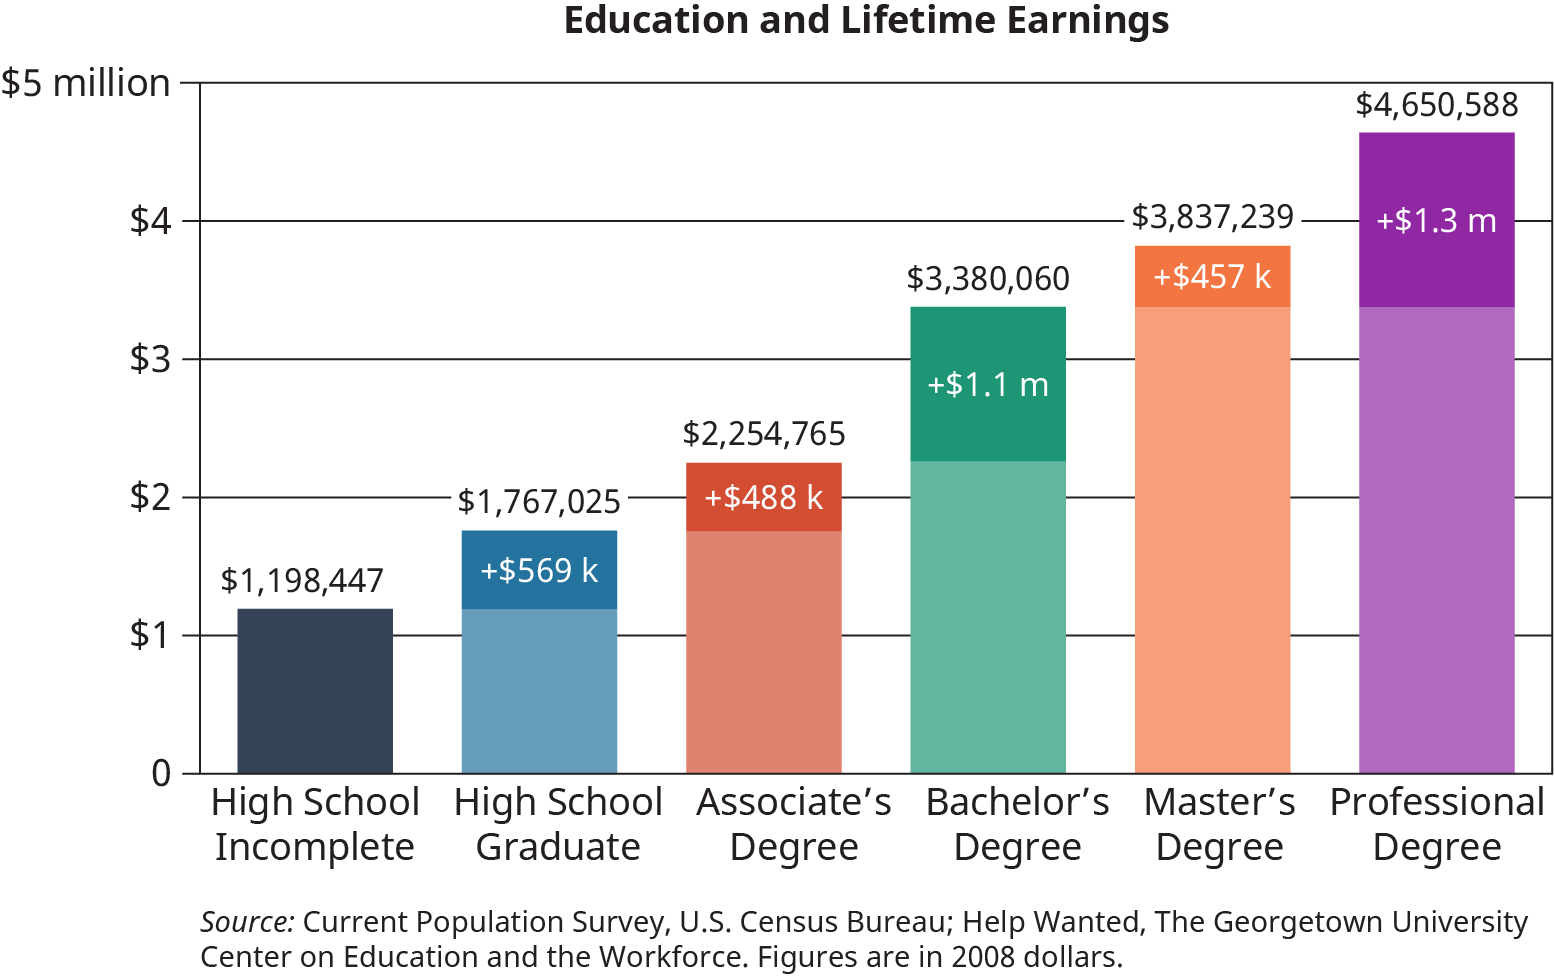 A vertical bar graph plots the relationship between the level of education of students and their lifetime earnings.